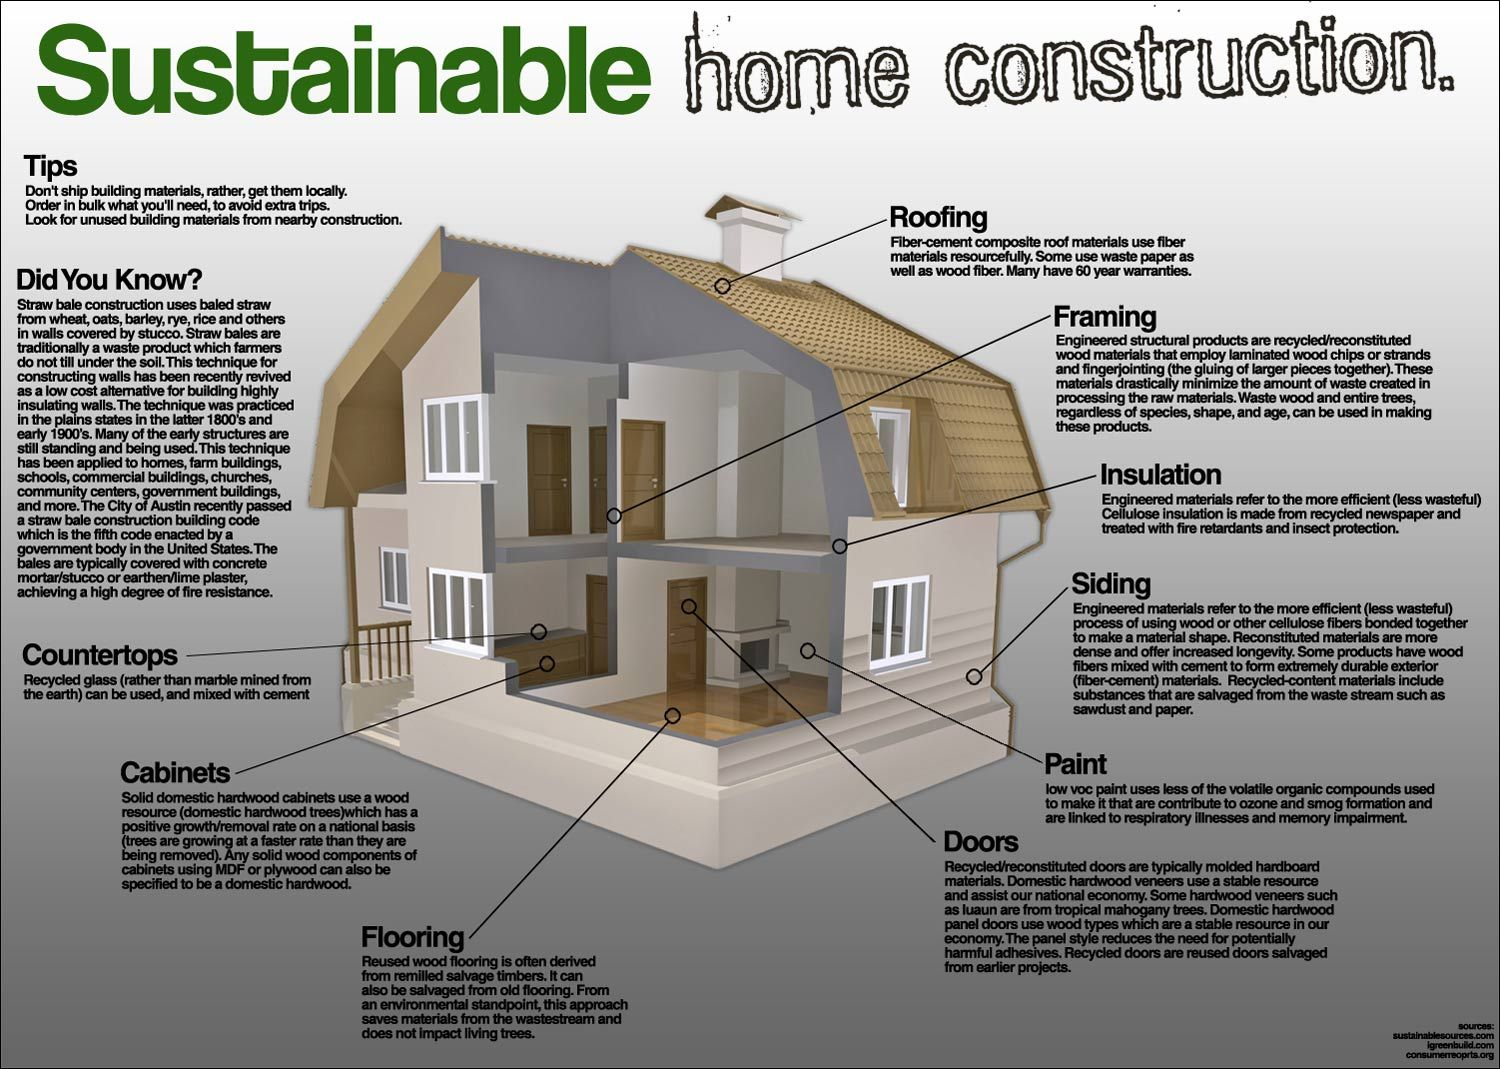 How Do You Build The Most Sustainable Home Sustaility